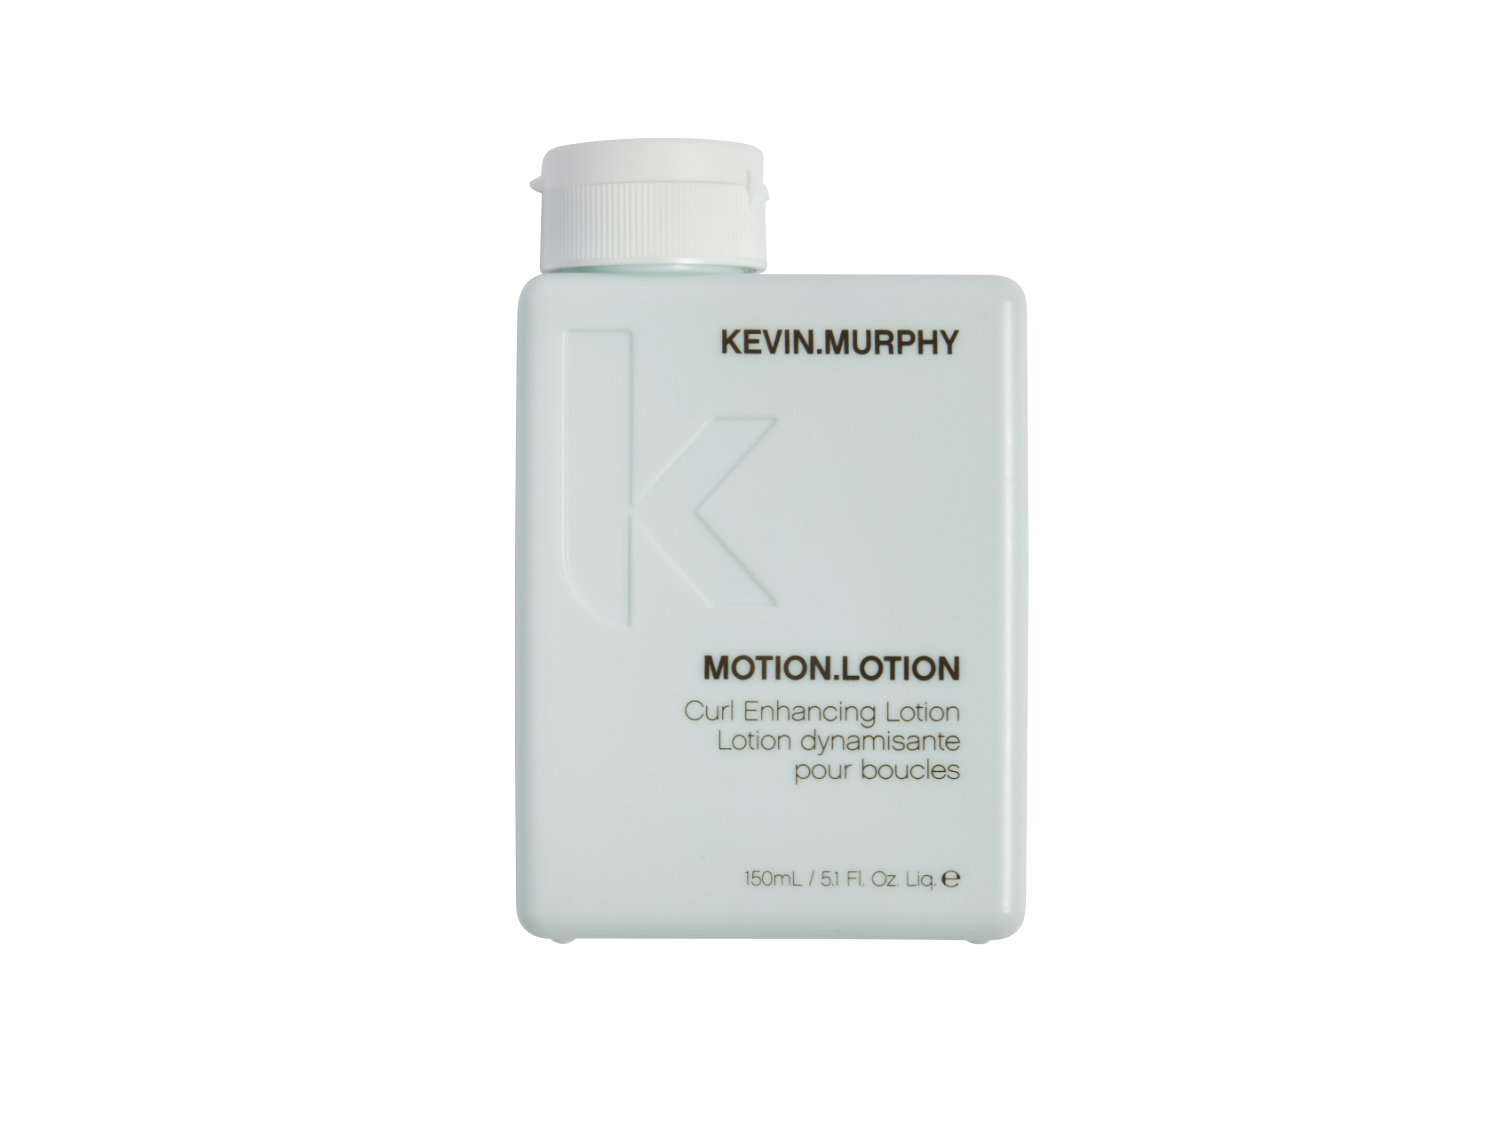 Arma Beauty - Kevin Murphy - MOTION.LOTION